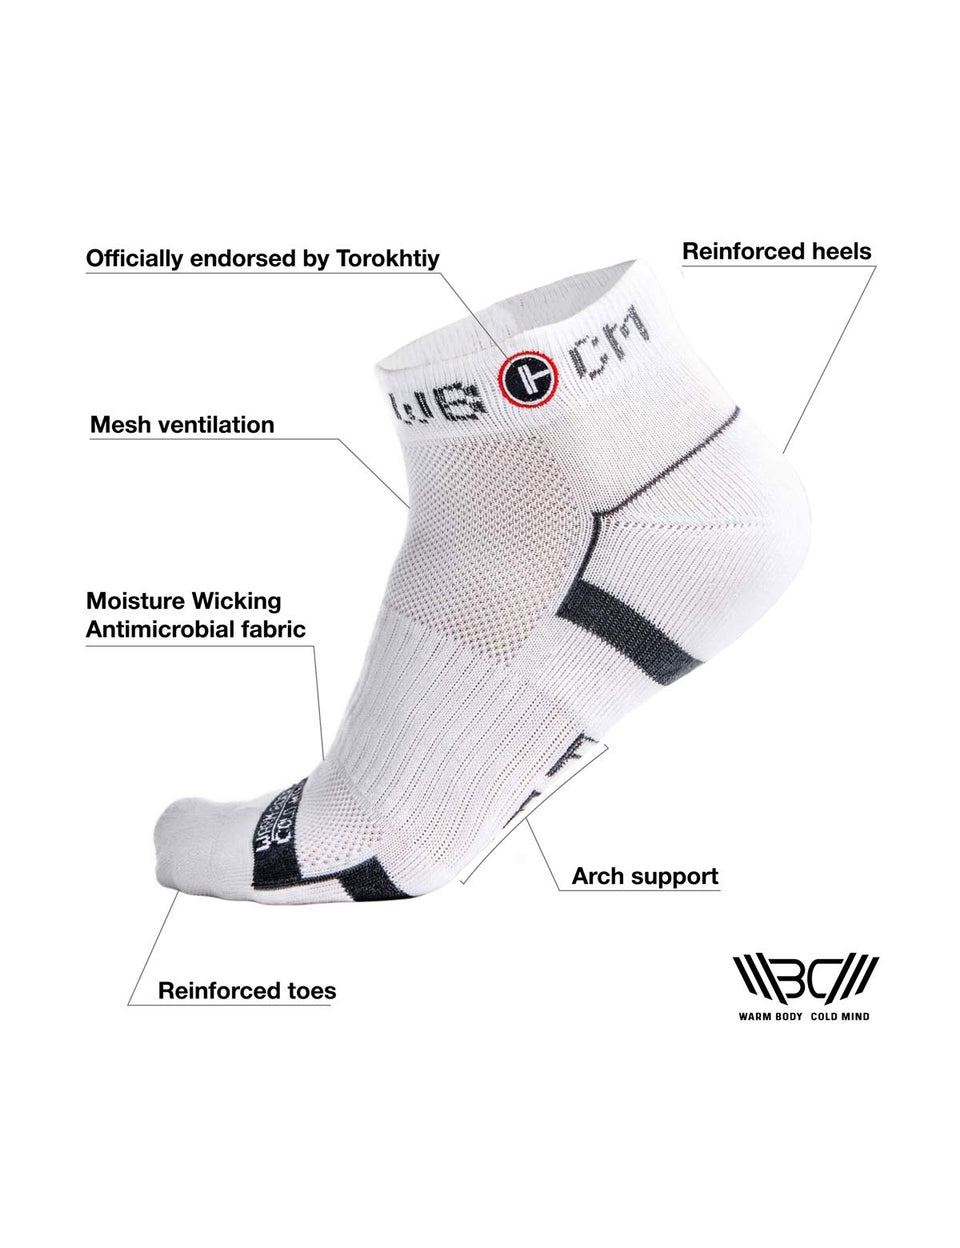 Warm Body Cold Mind weightlifting training socks